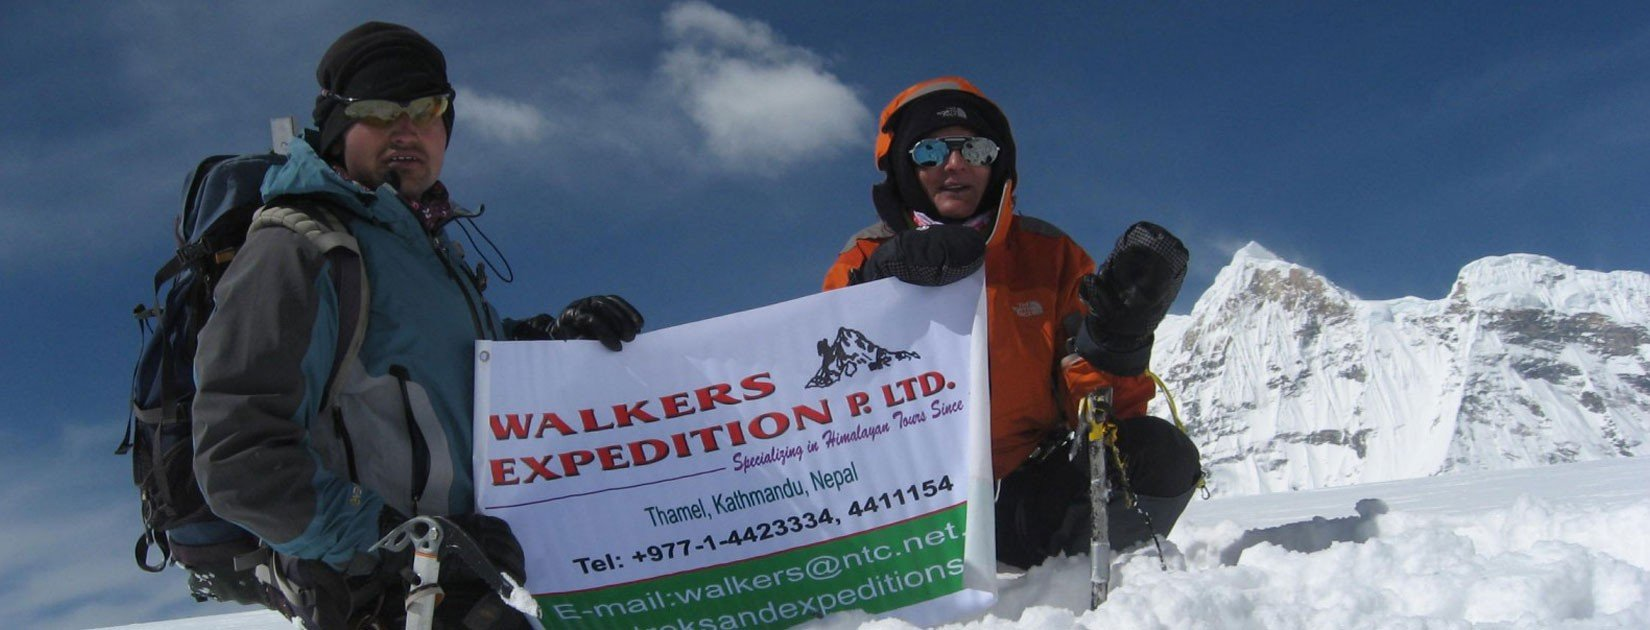 Expedition in Nepal with Walkers